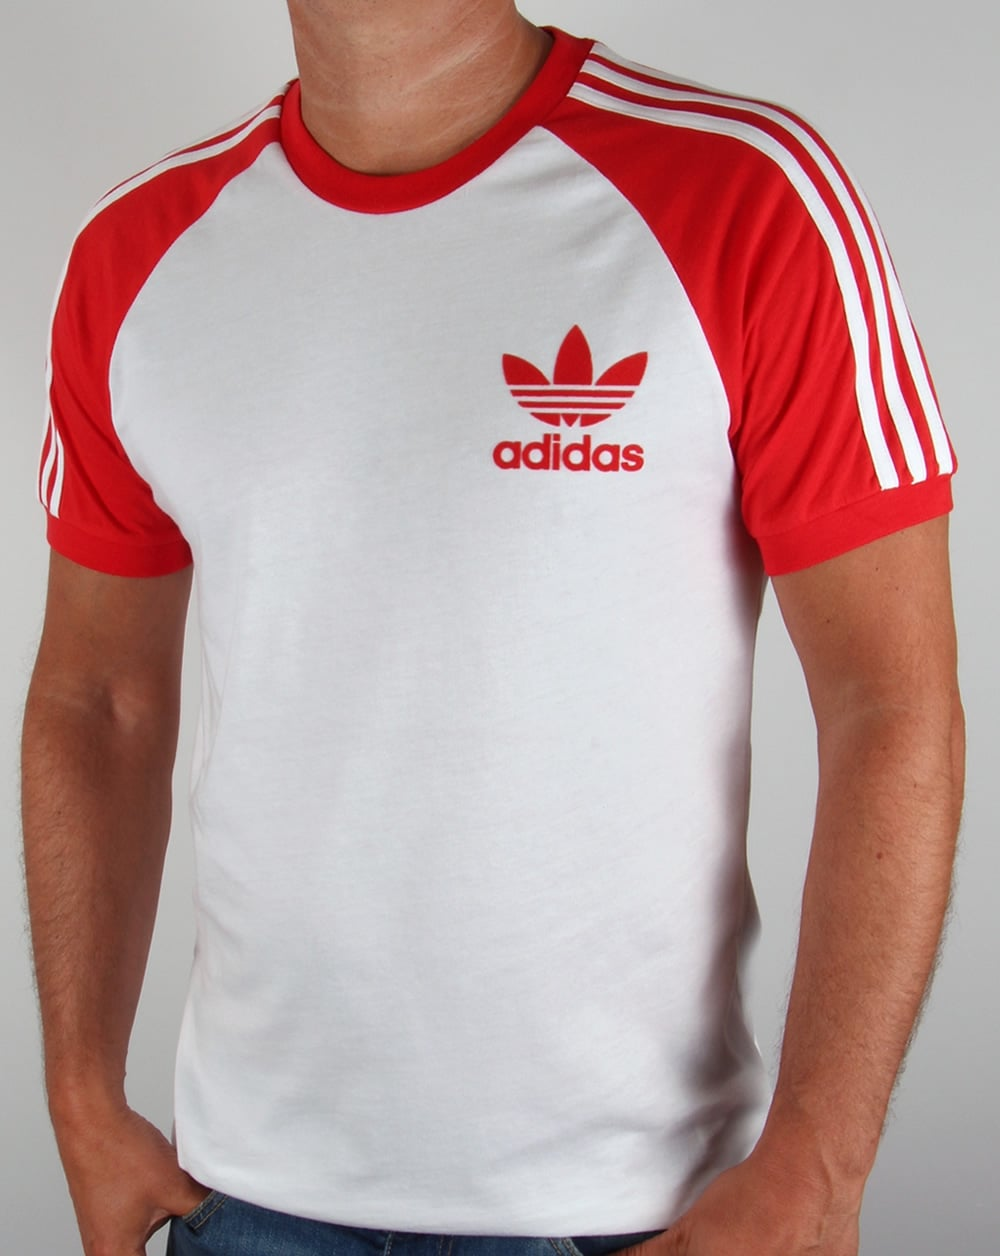 césped vídeo Talla  Adidas Originals Retro 3 Stripe T-shirt White/Red,california,tee